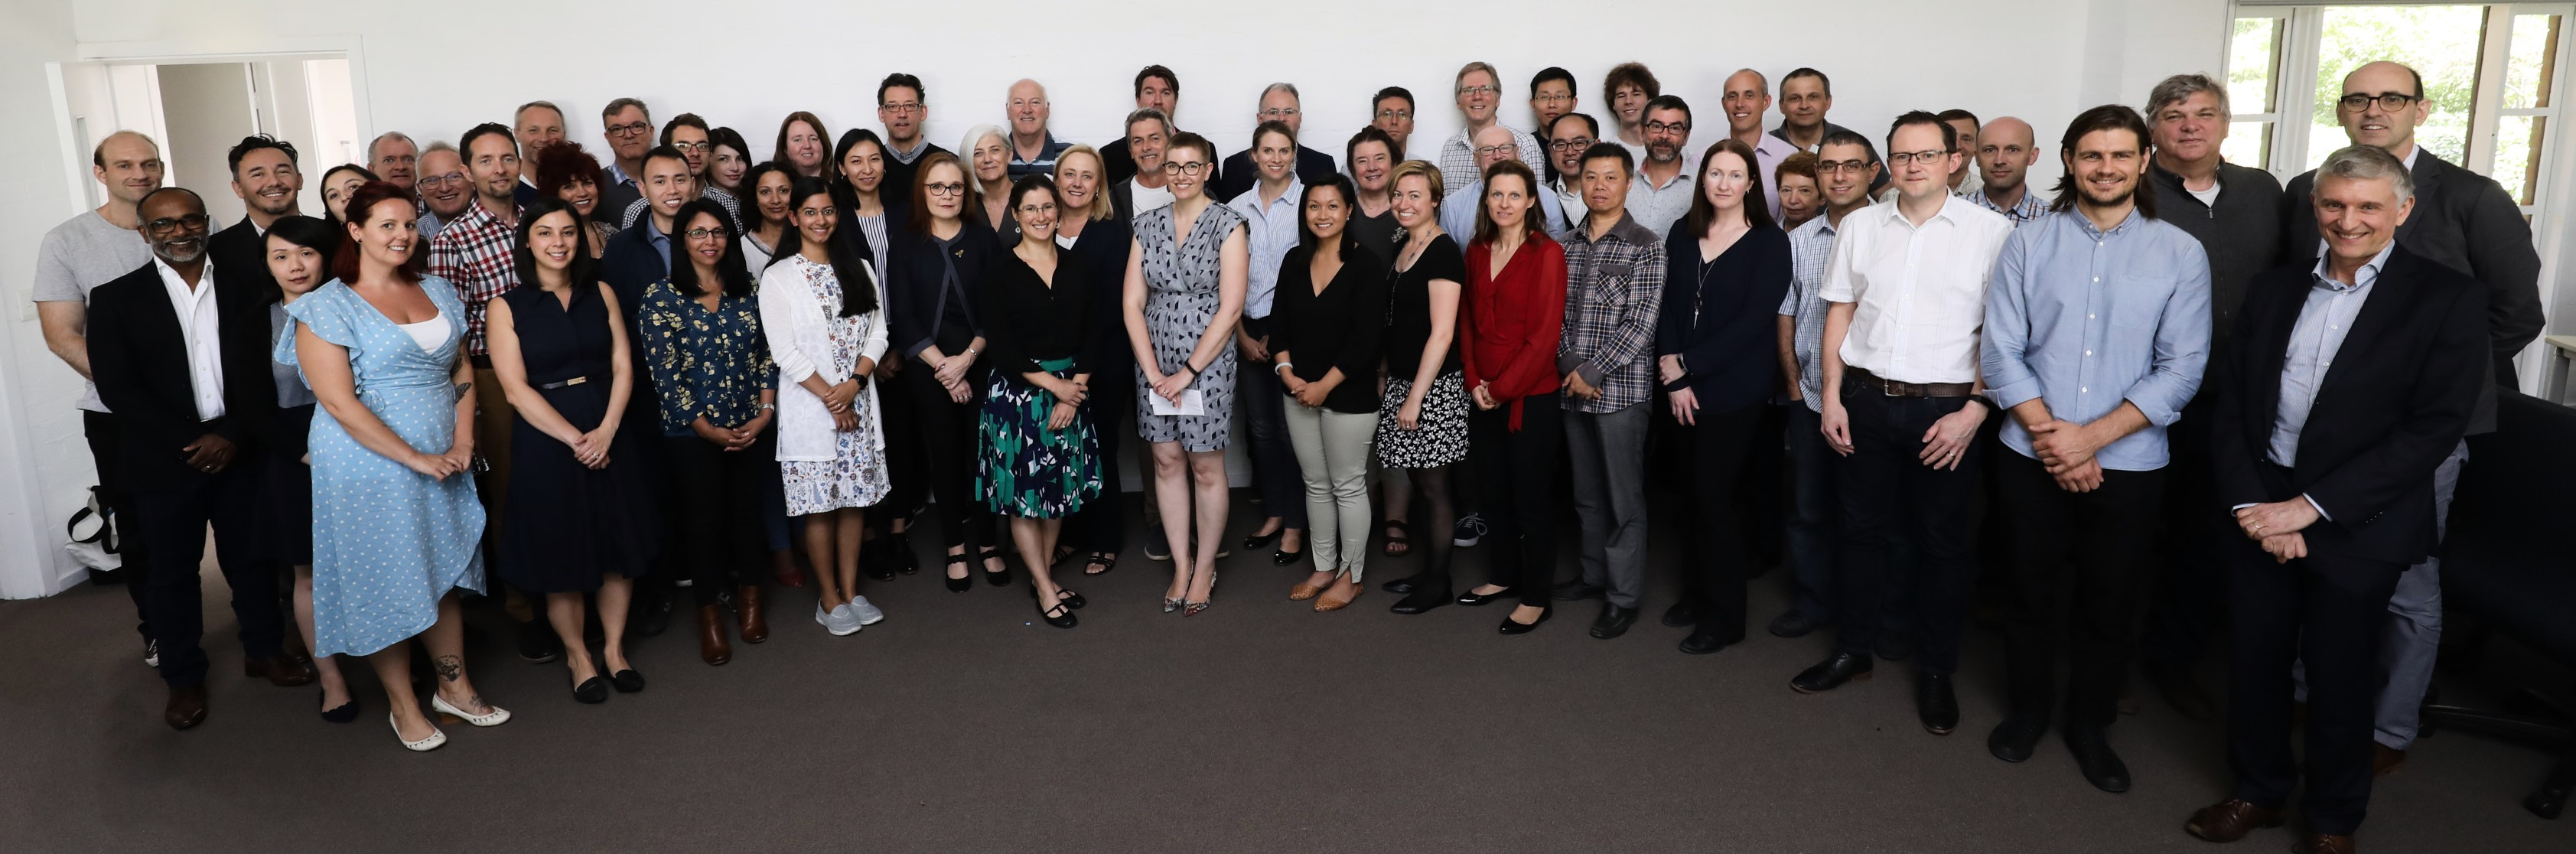 Group photo of female and male cancer researchers and scientists